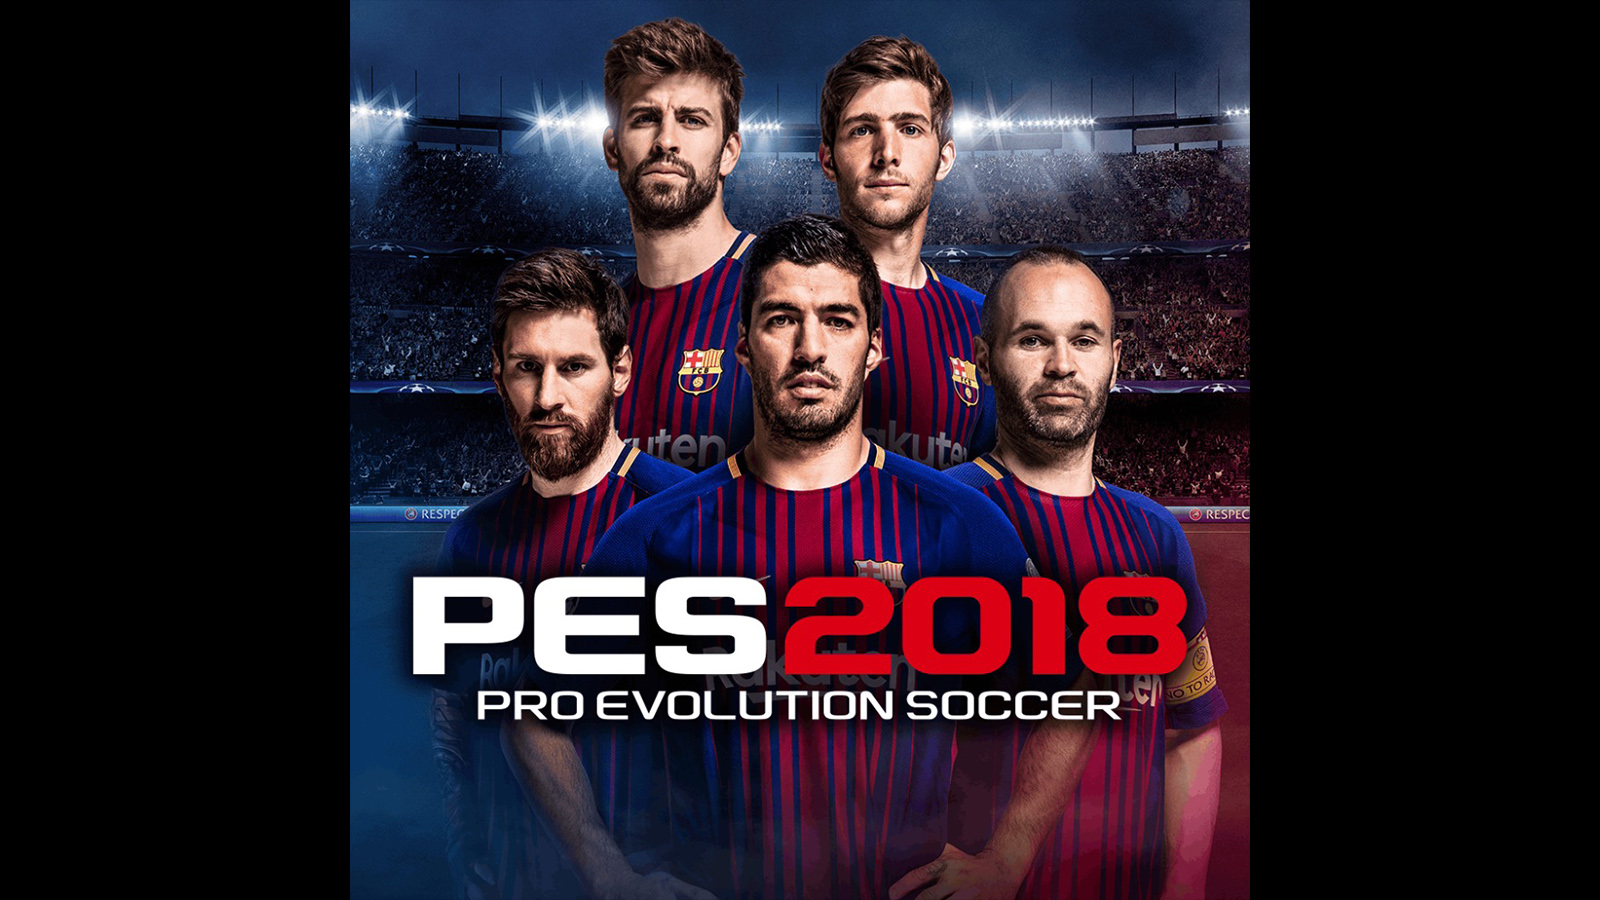 PRO EVOLUTION SOCCER 2018 Game | PS4 - PlayStation